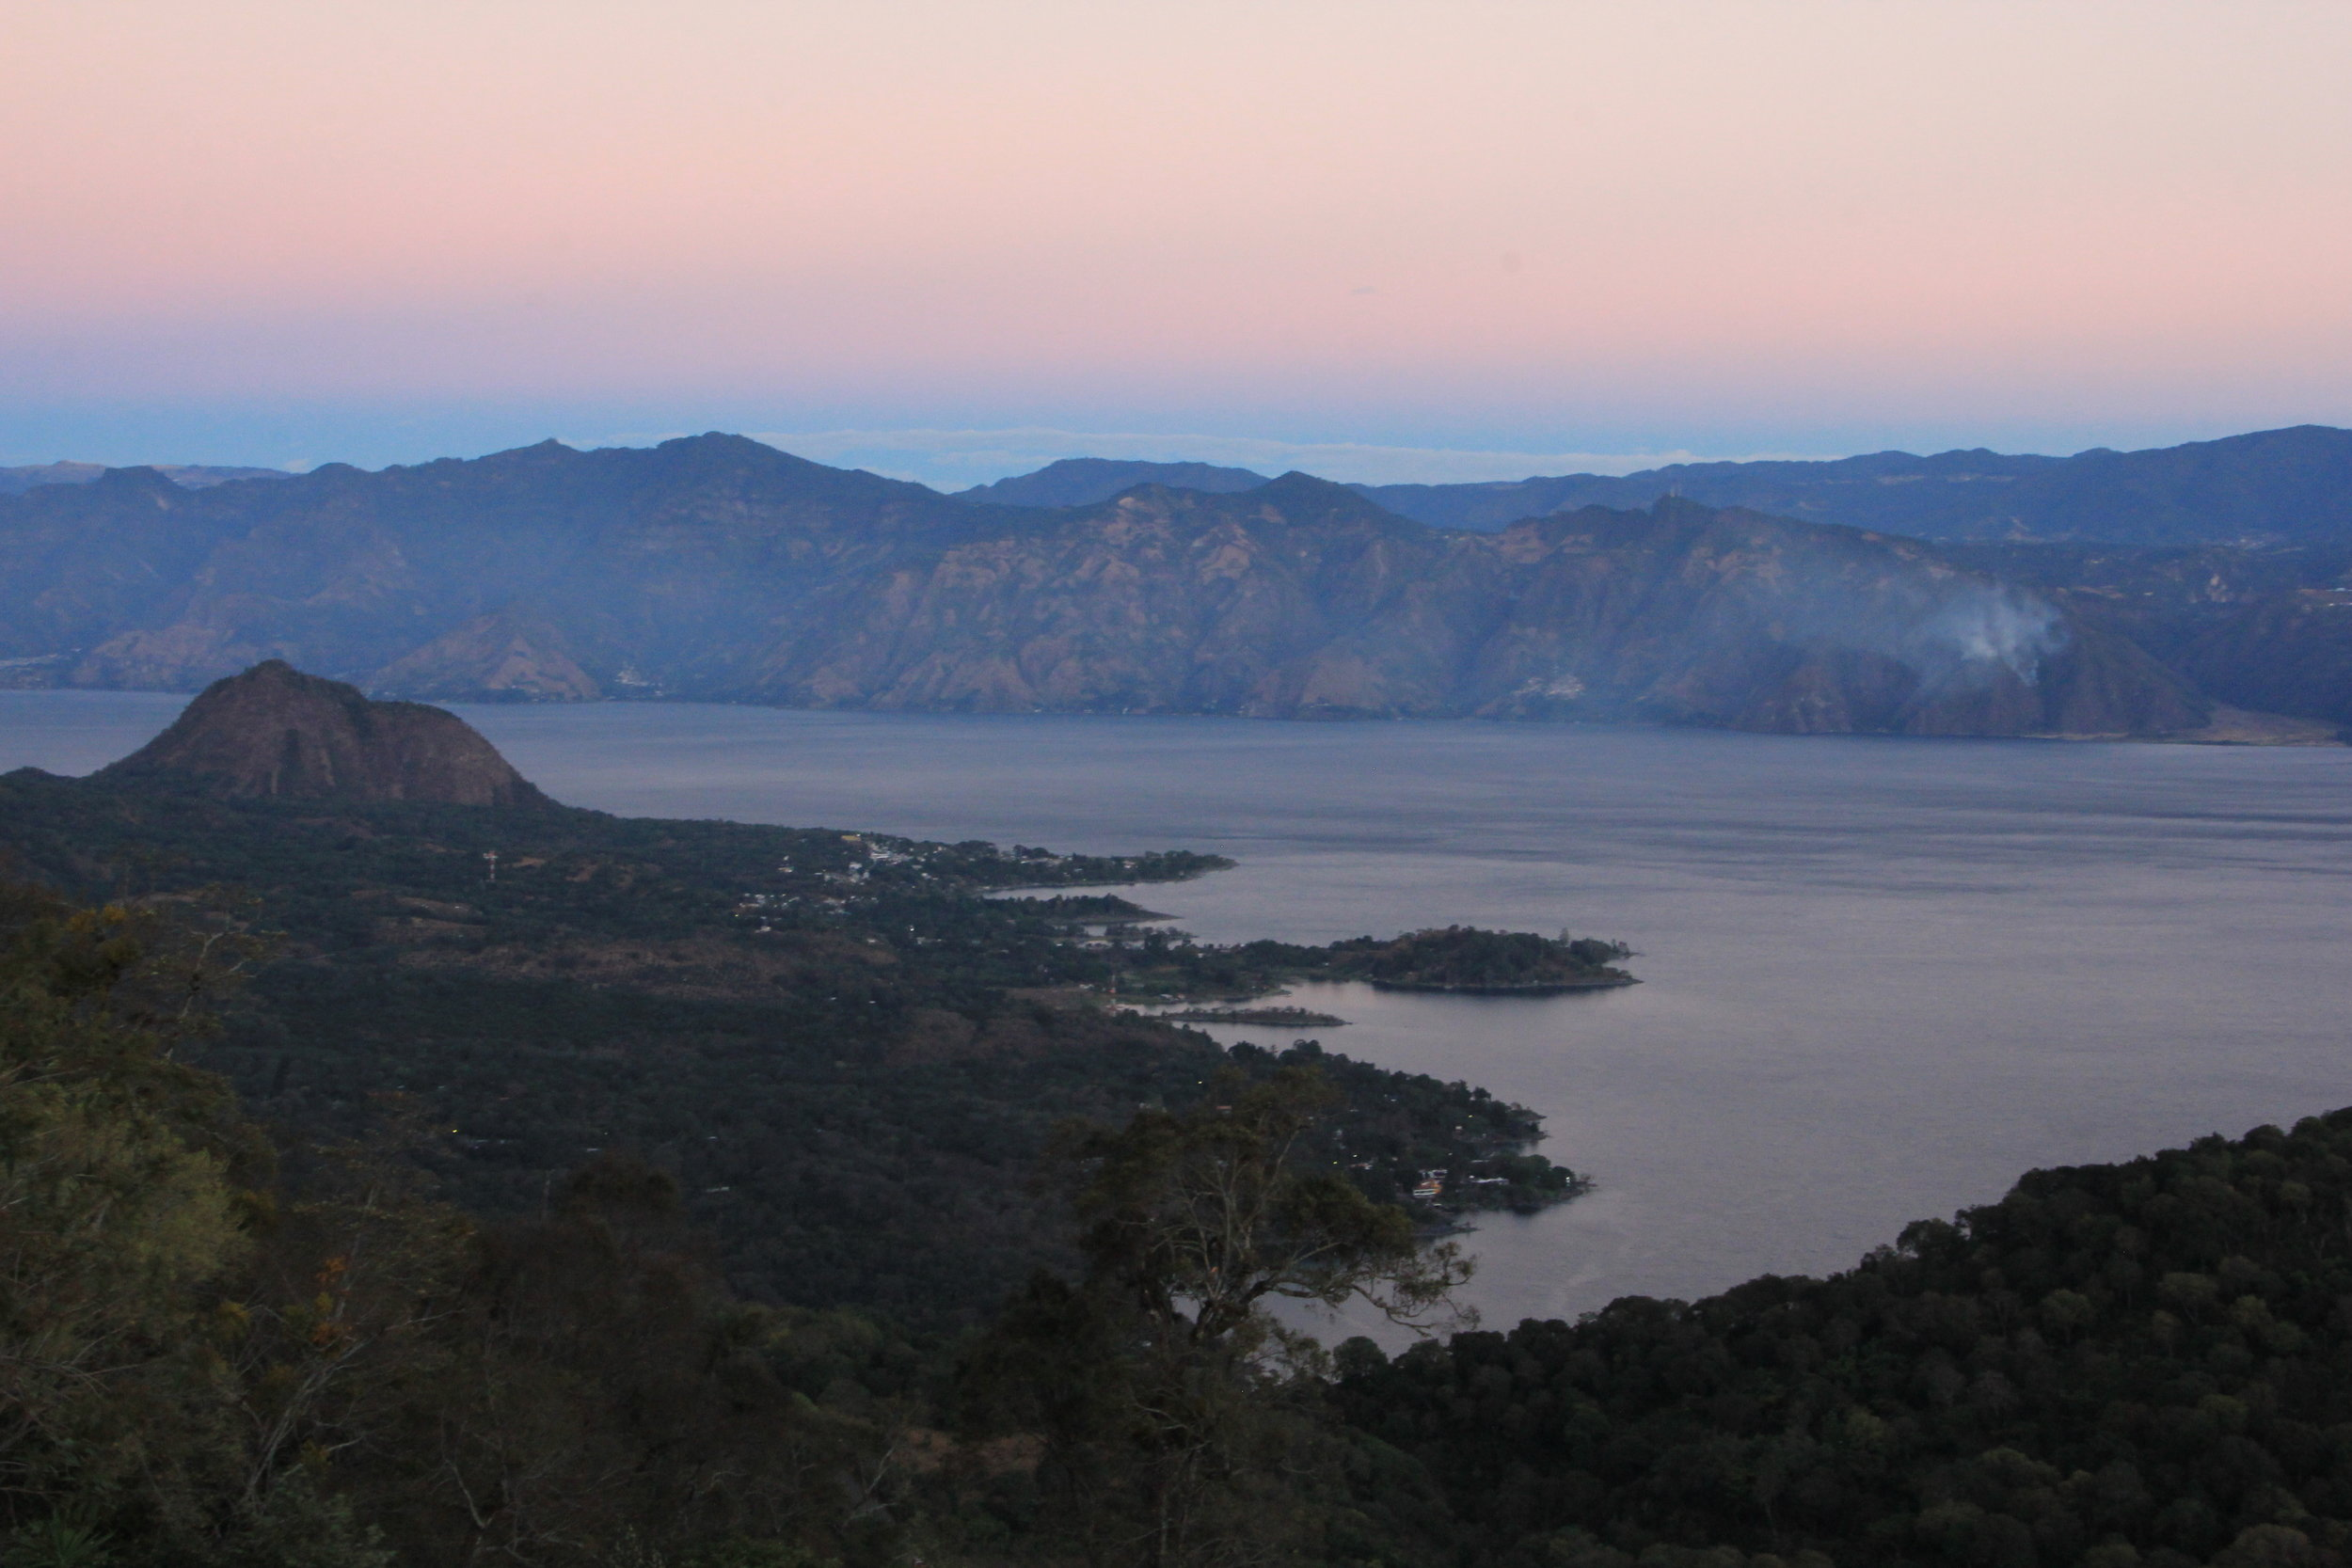 View of Atitlán Lake from San Lucas Tolimán